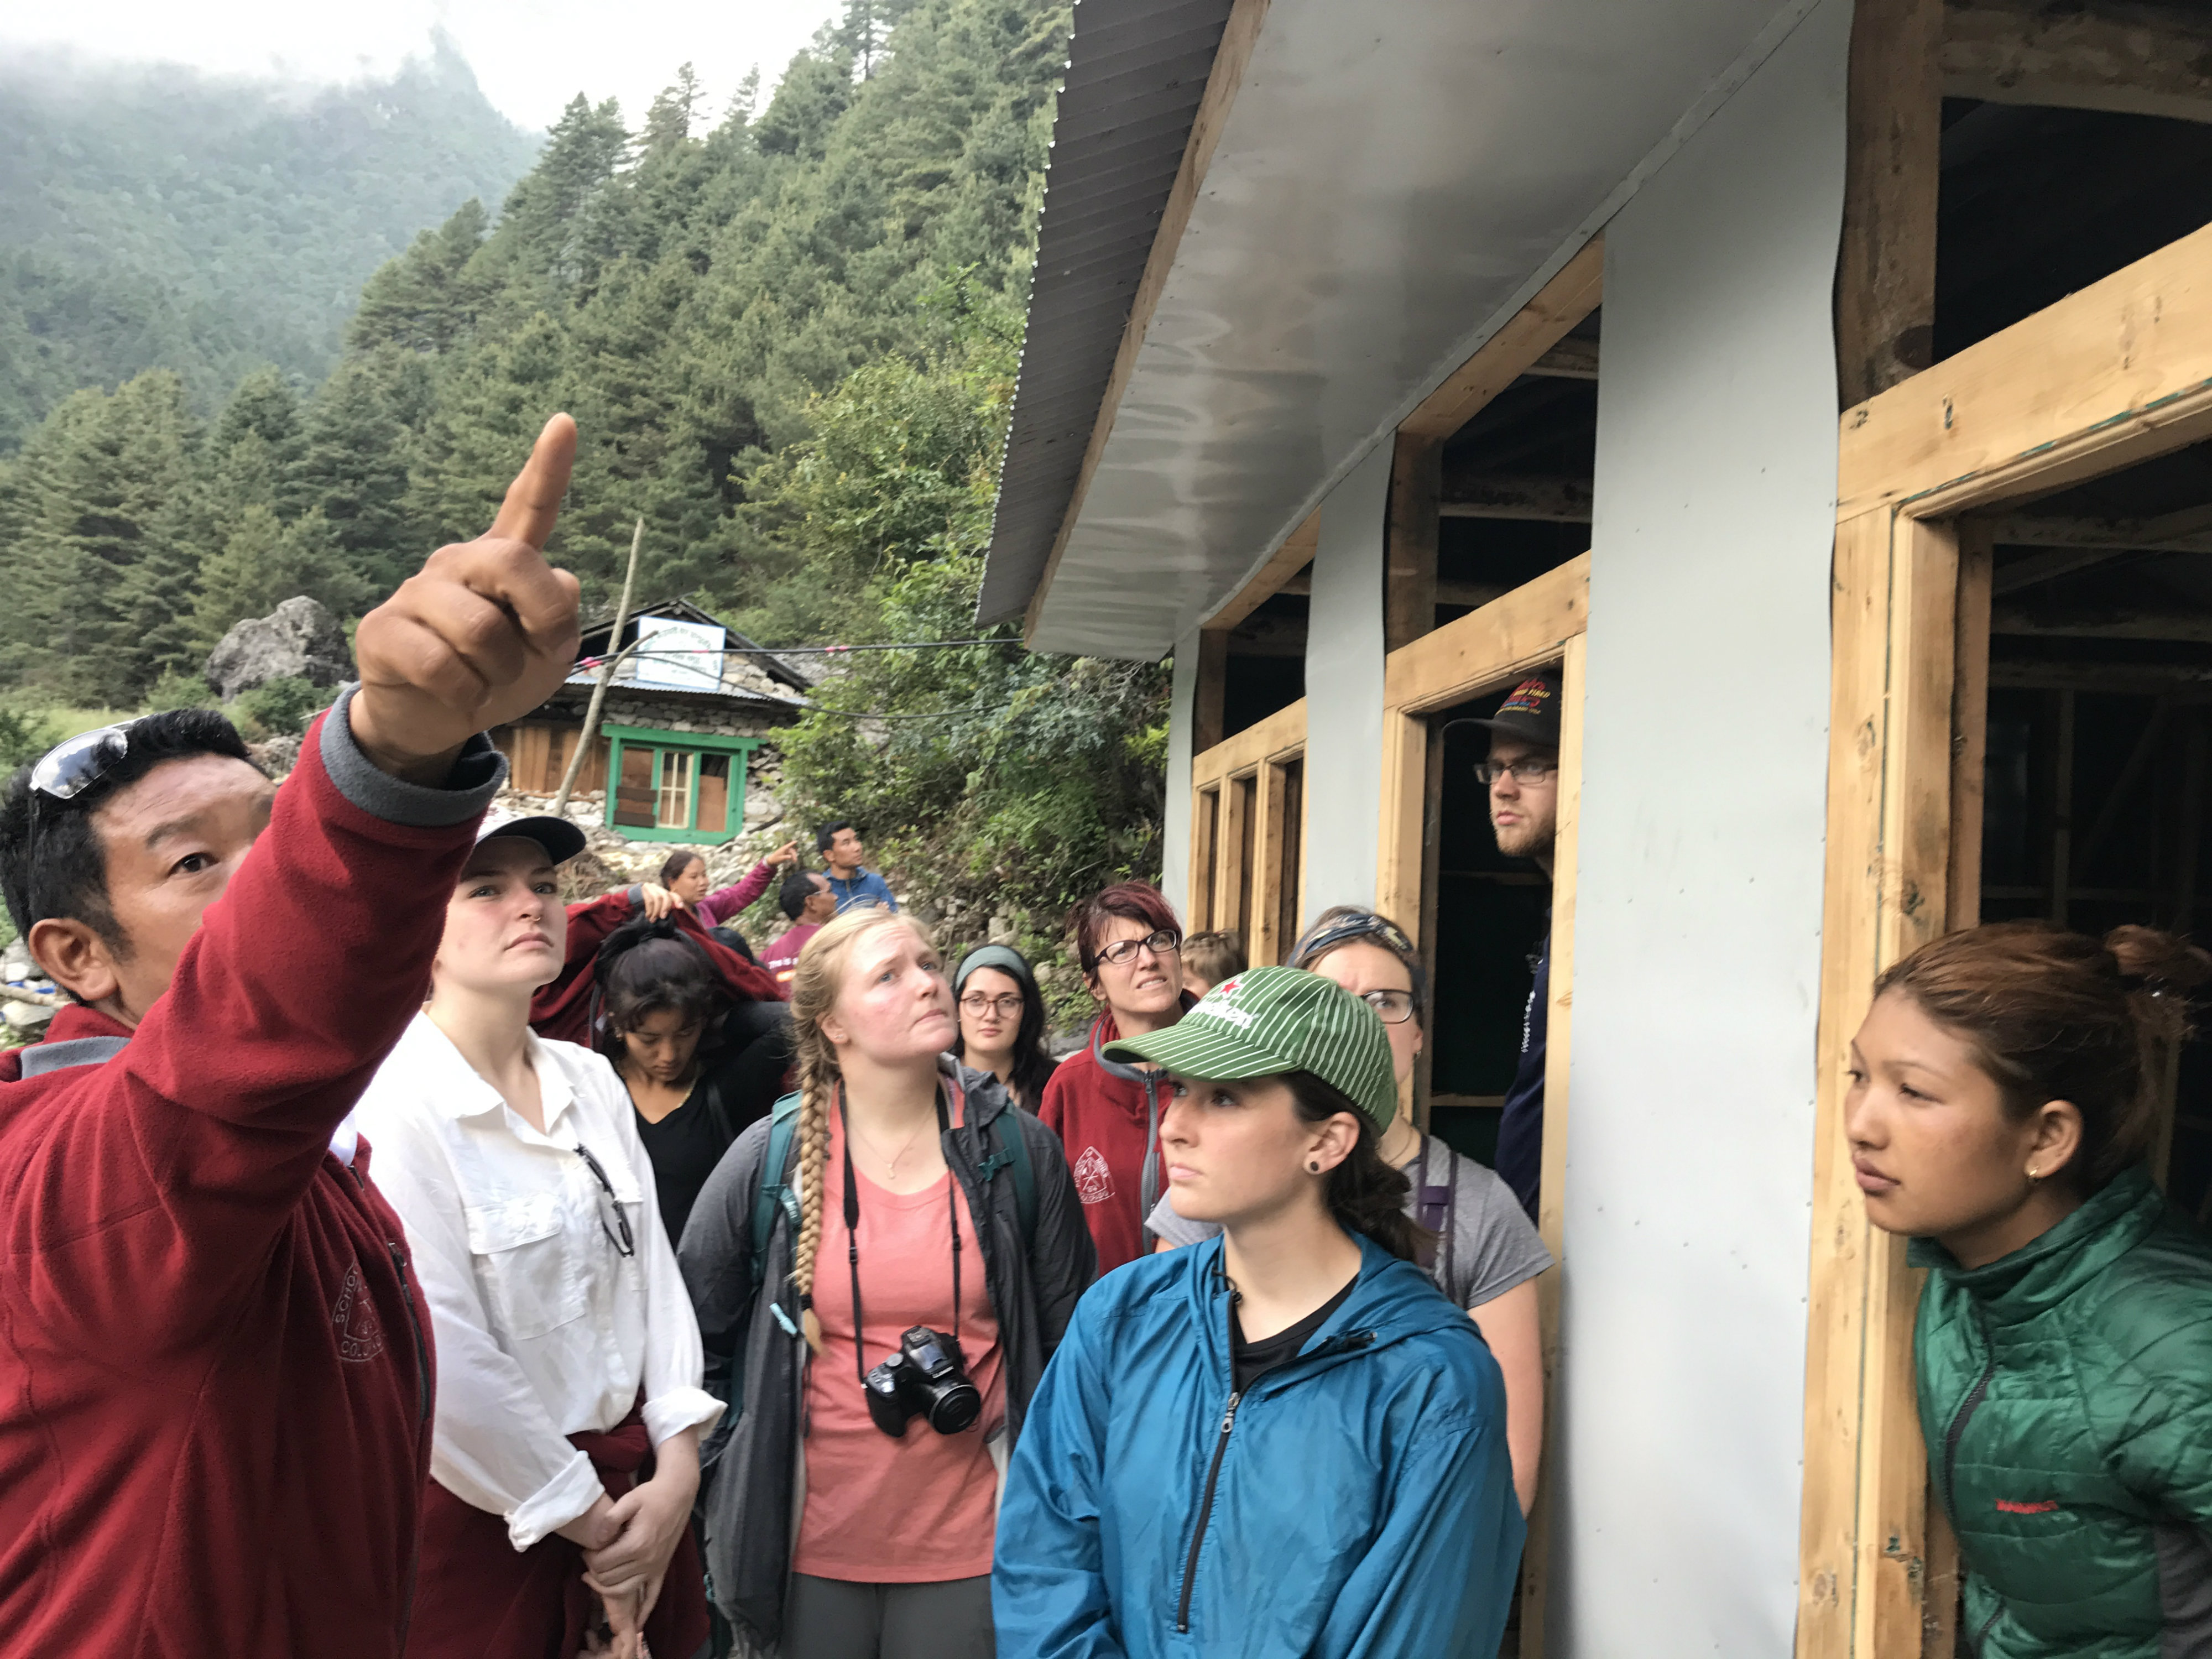 Lhakpa Sherpa, founder of Hike for Help, explains to Mines students the construction of Hike for Help's workshop for the Dalit to produce and sell their handicrafts .